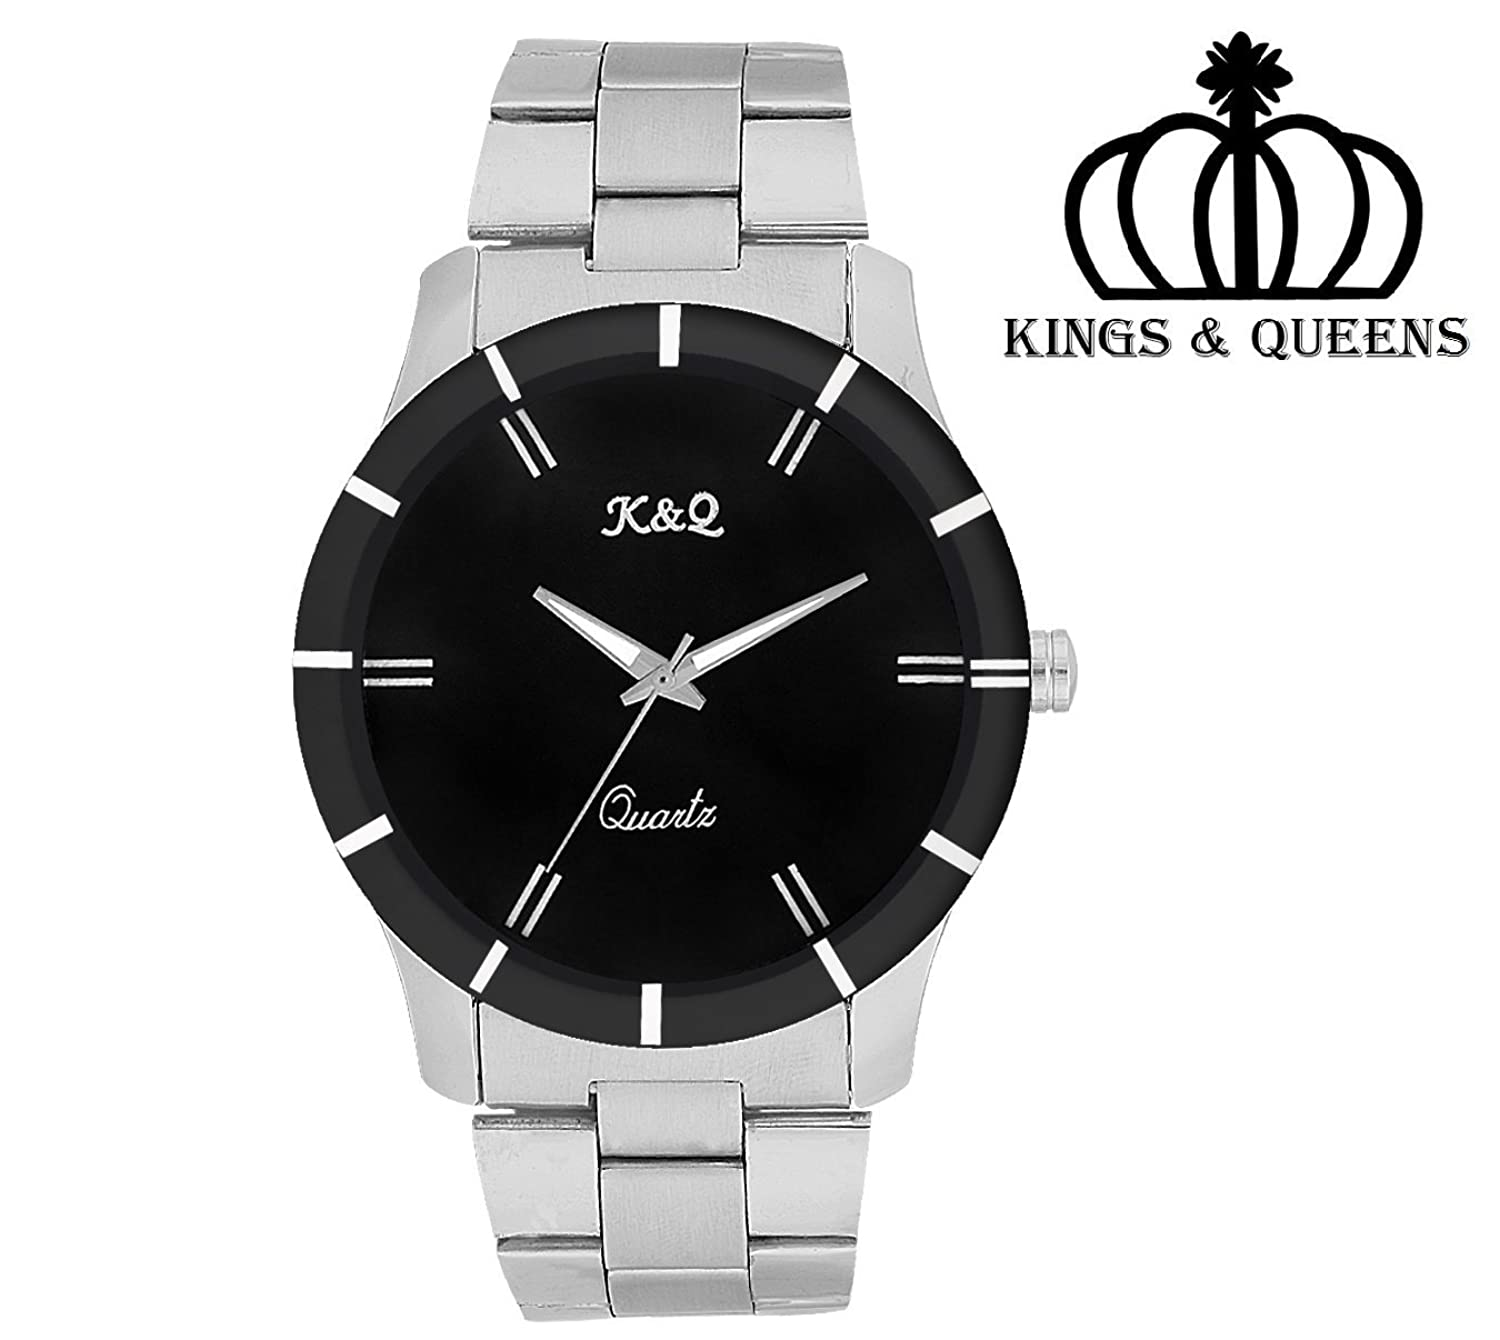 ankur prices jubile black chain bd rado watch product buy rcw watches wrist silver com dial cheap replica